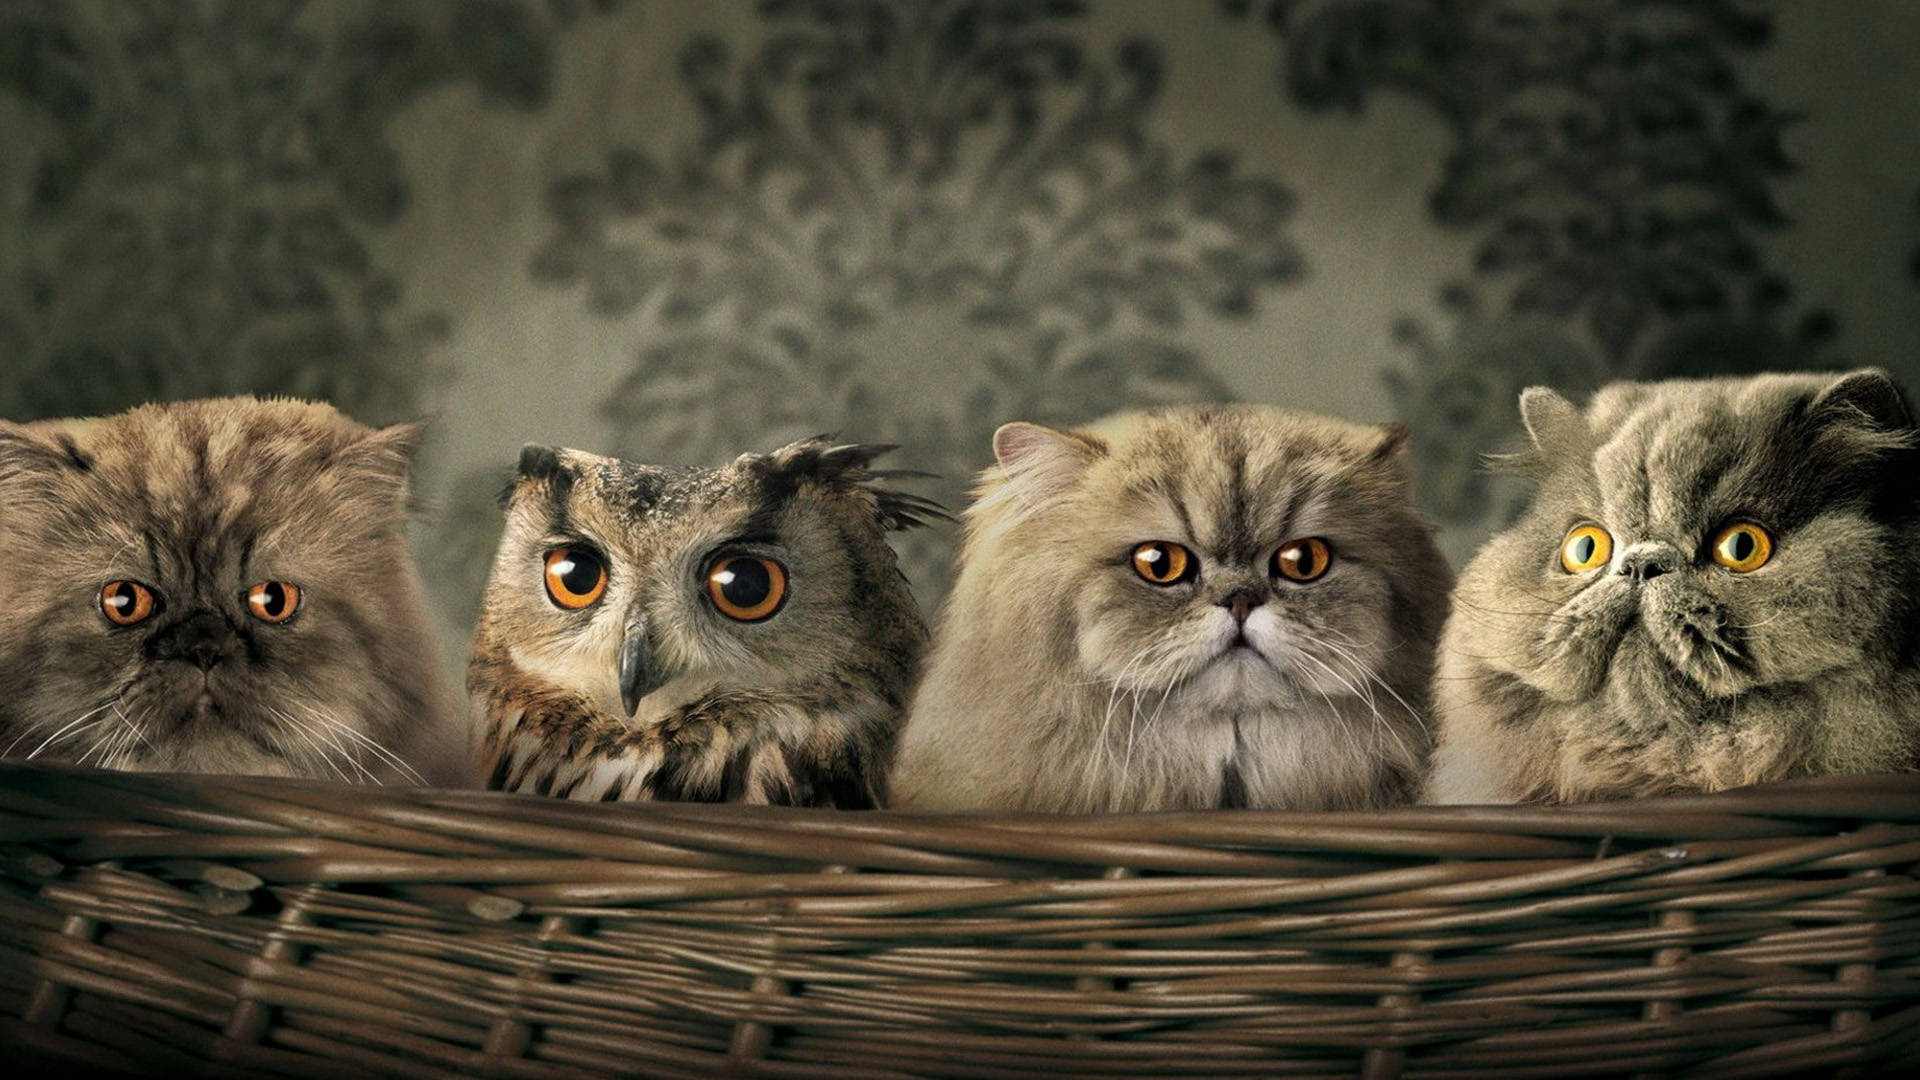 Cute Funny Animal Wallpapers - Funny Animal Desktop , HD Wallpaper & Backgrounds